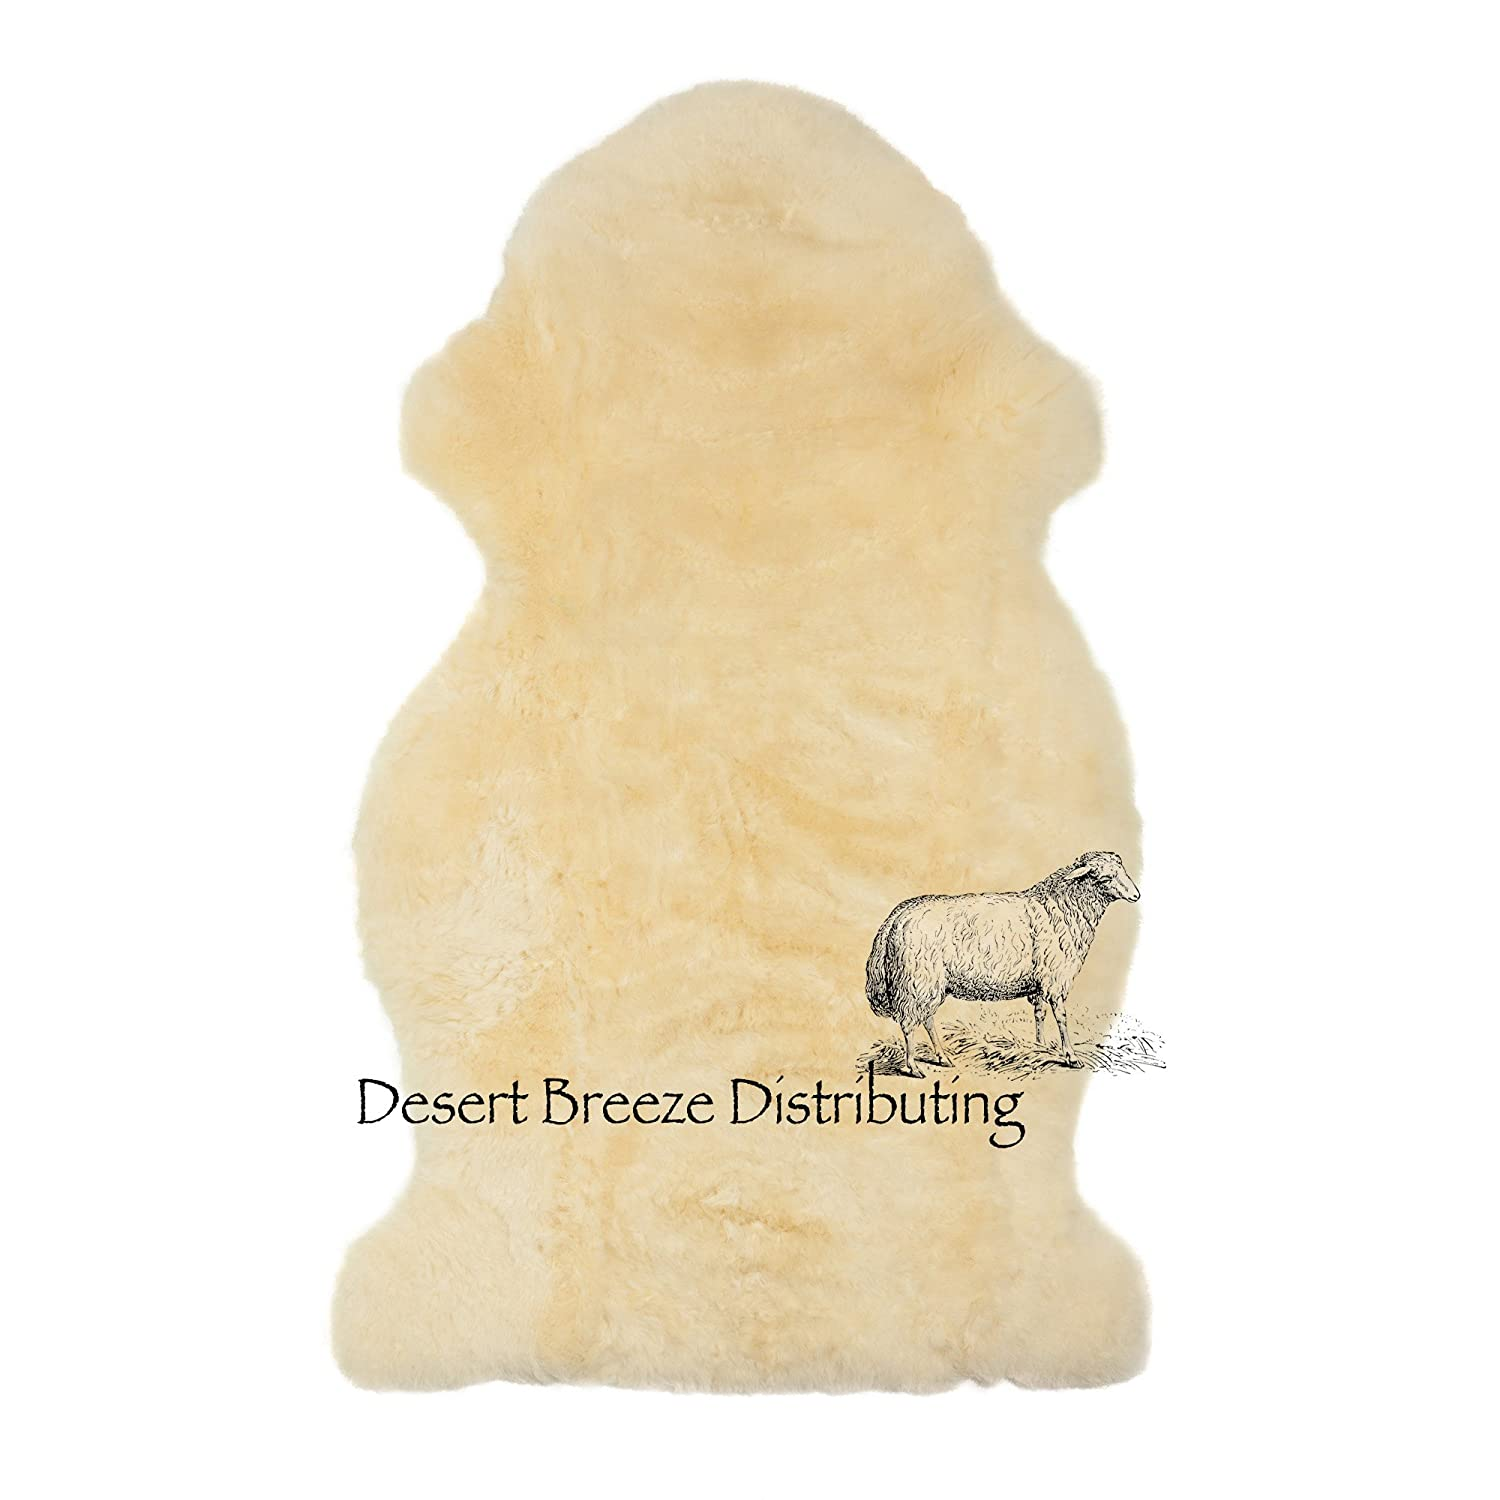 by Desert Breeze Distributing Soothing Comfort Year Round Size XL New Zealand Lambskin for Baby,100/% Natural and Luxuriously Soft Shorn Wool